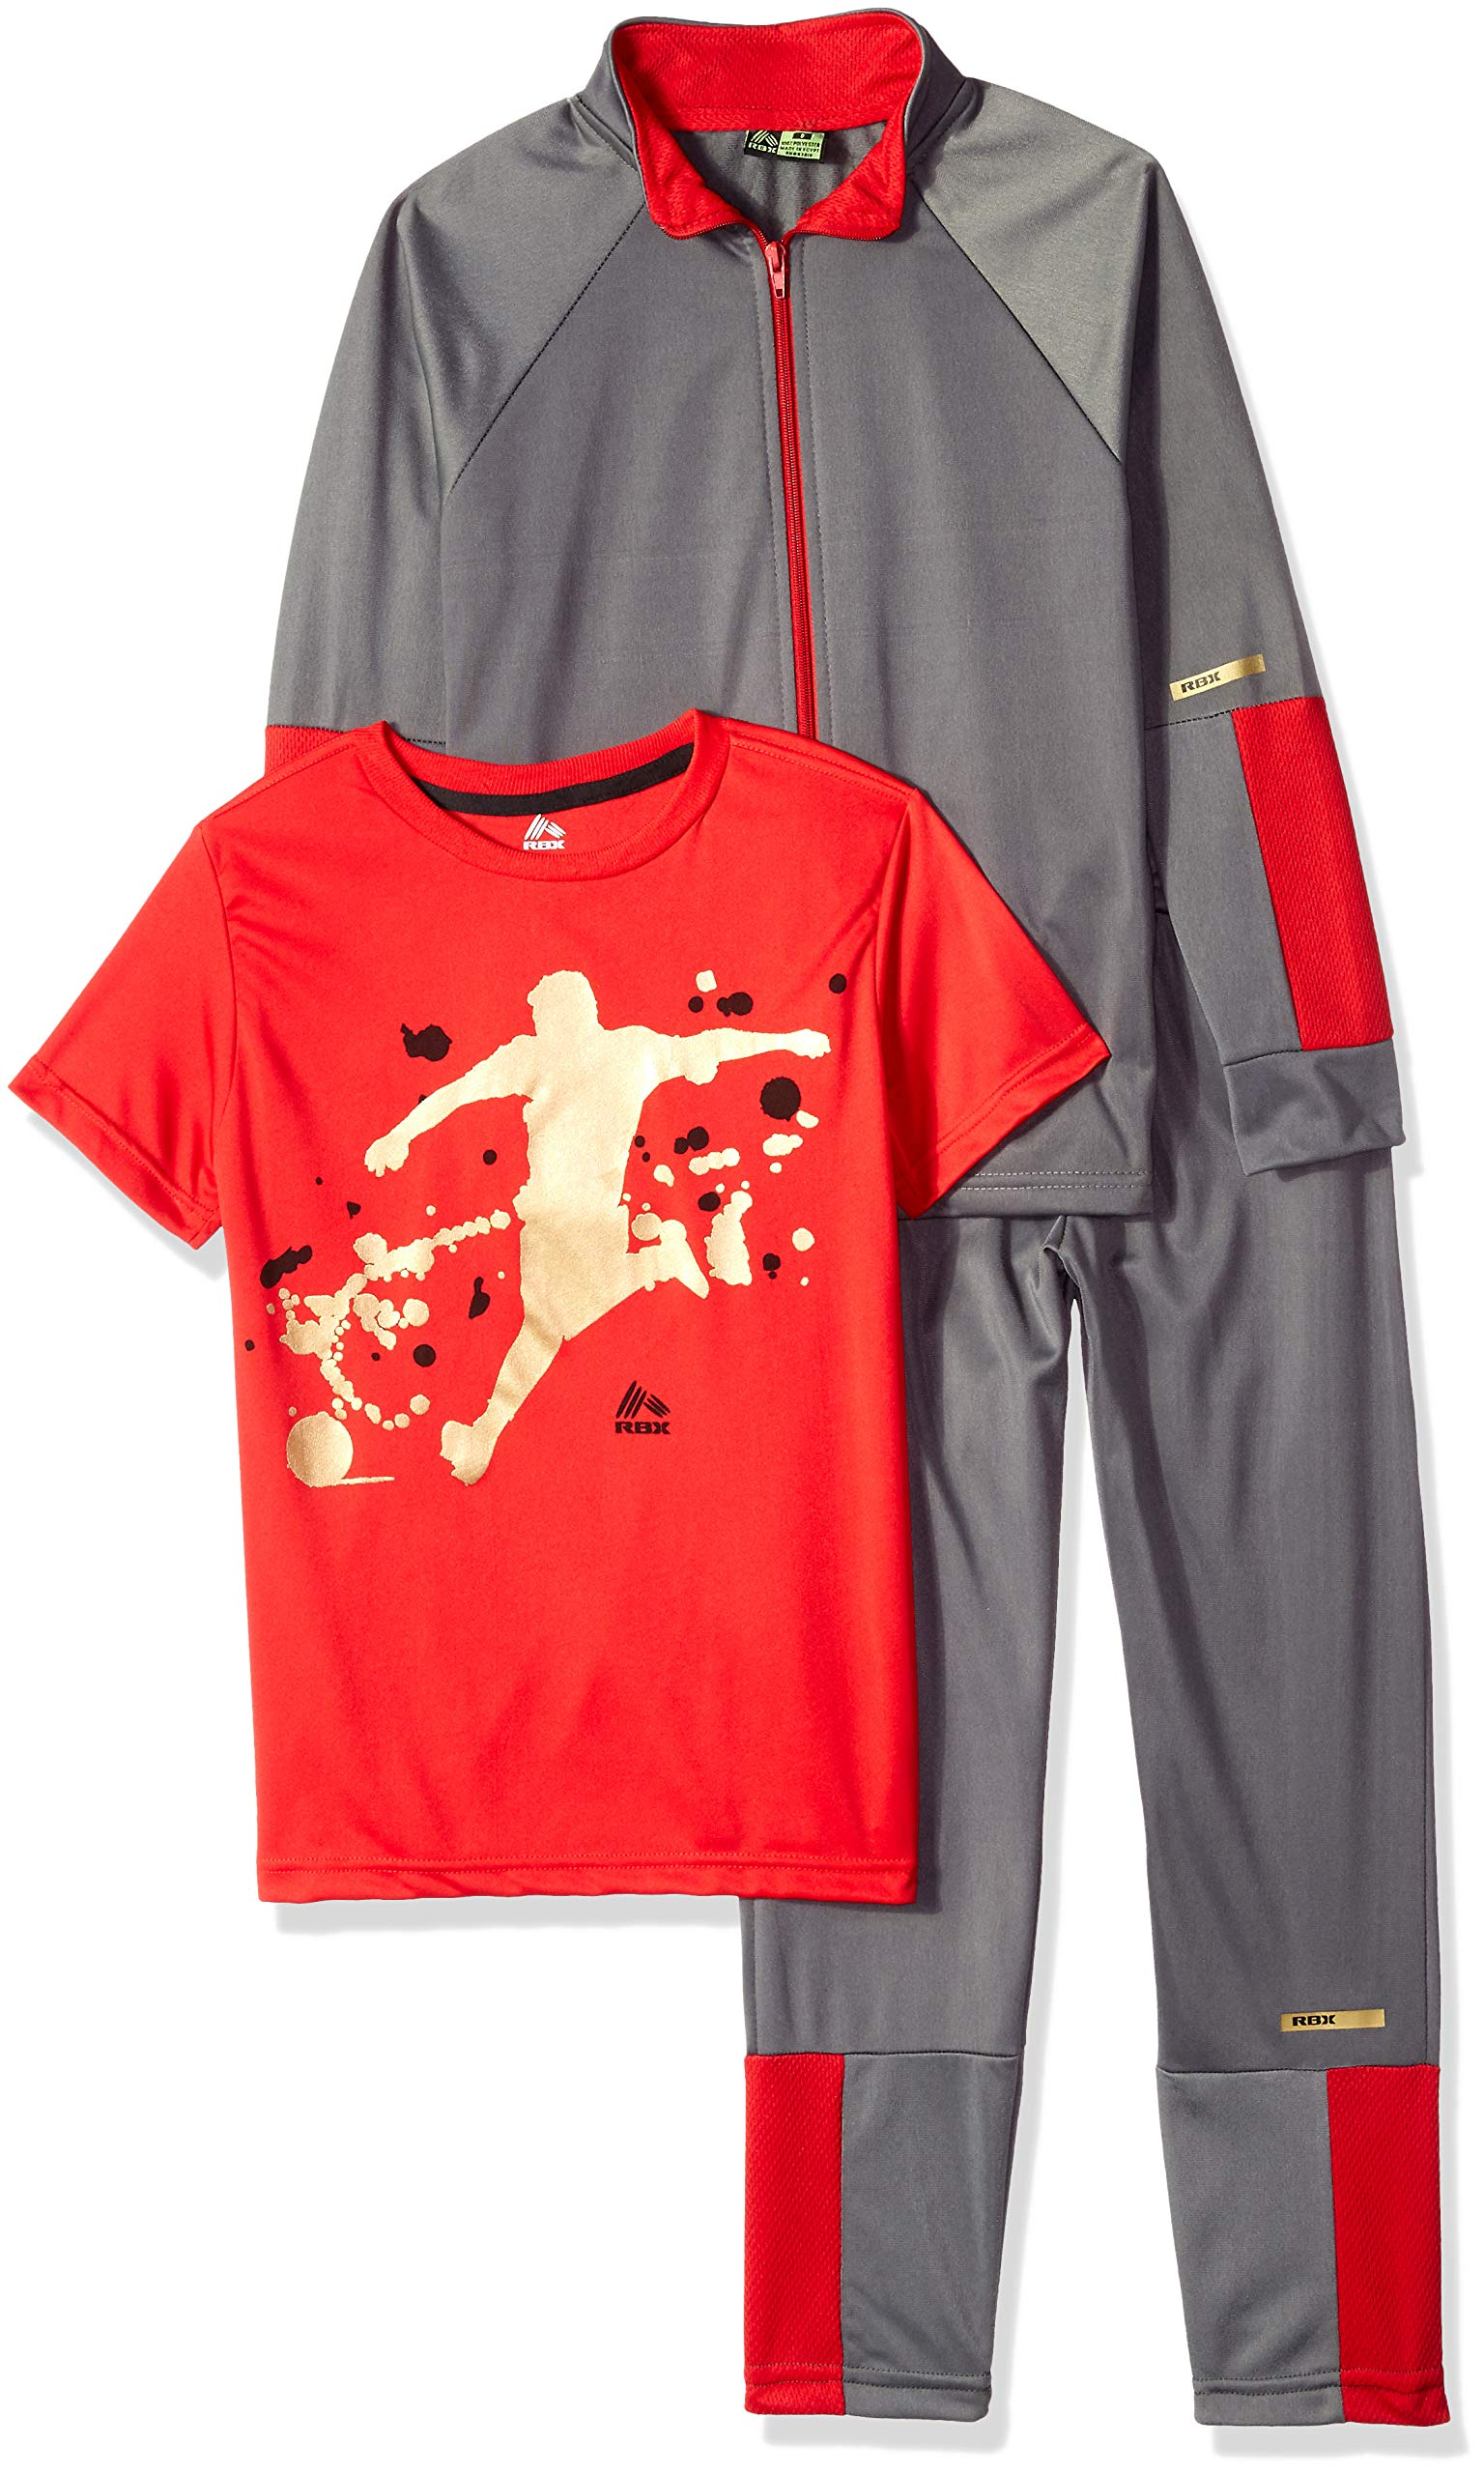 RBX Boys' Big Tricot Jacket, Tee and Pant Set, Castle Rock Grey/red, 10 by RBX